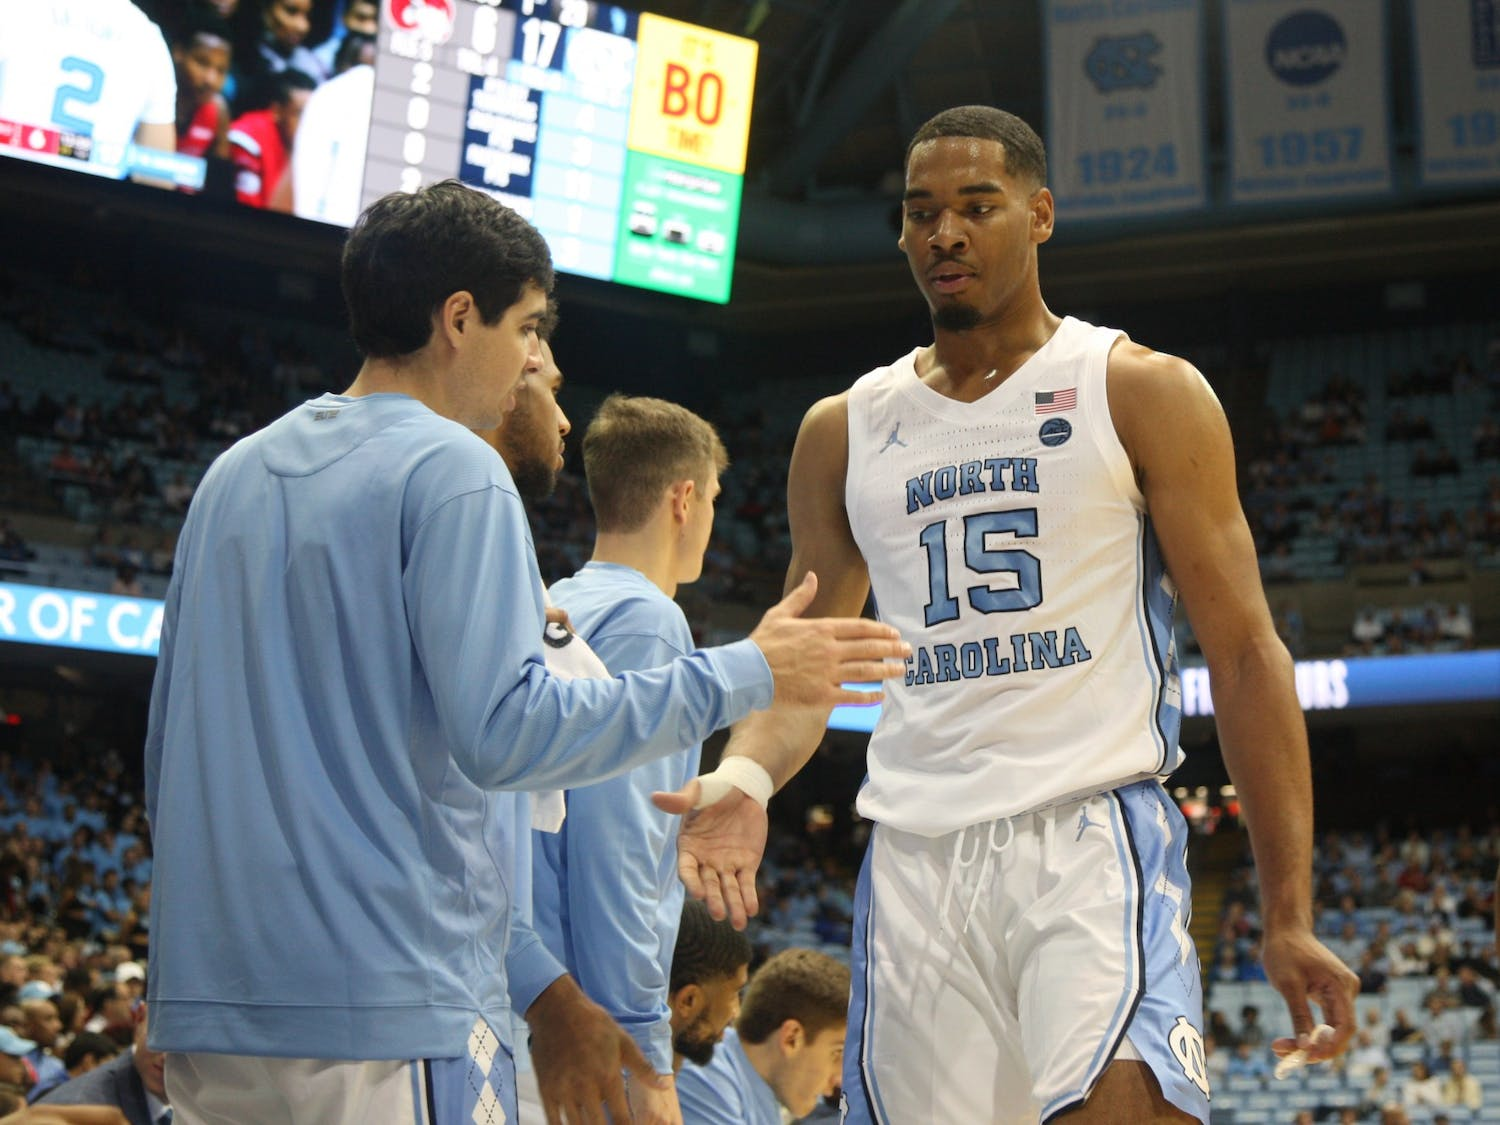 Junior guard Garrison Brooks (15) daps up his teammates during the exhibition game against Winston Salem State in the Smith Center on Friday, Nov. 1, 2019. UNC beat WSSU 96-61.